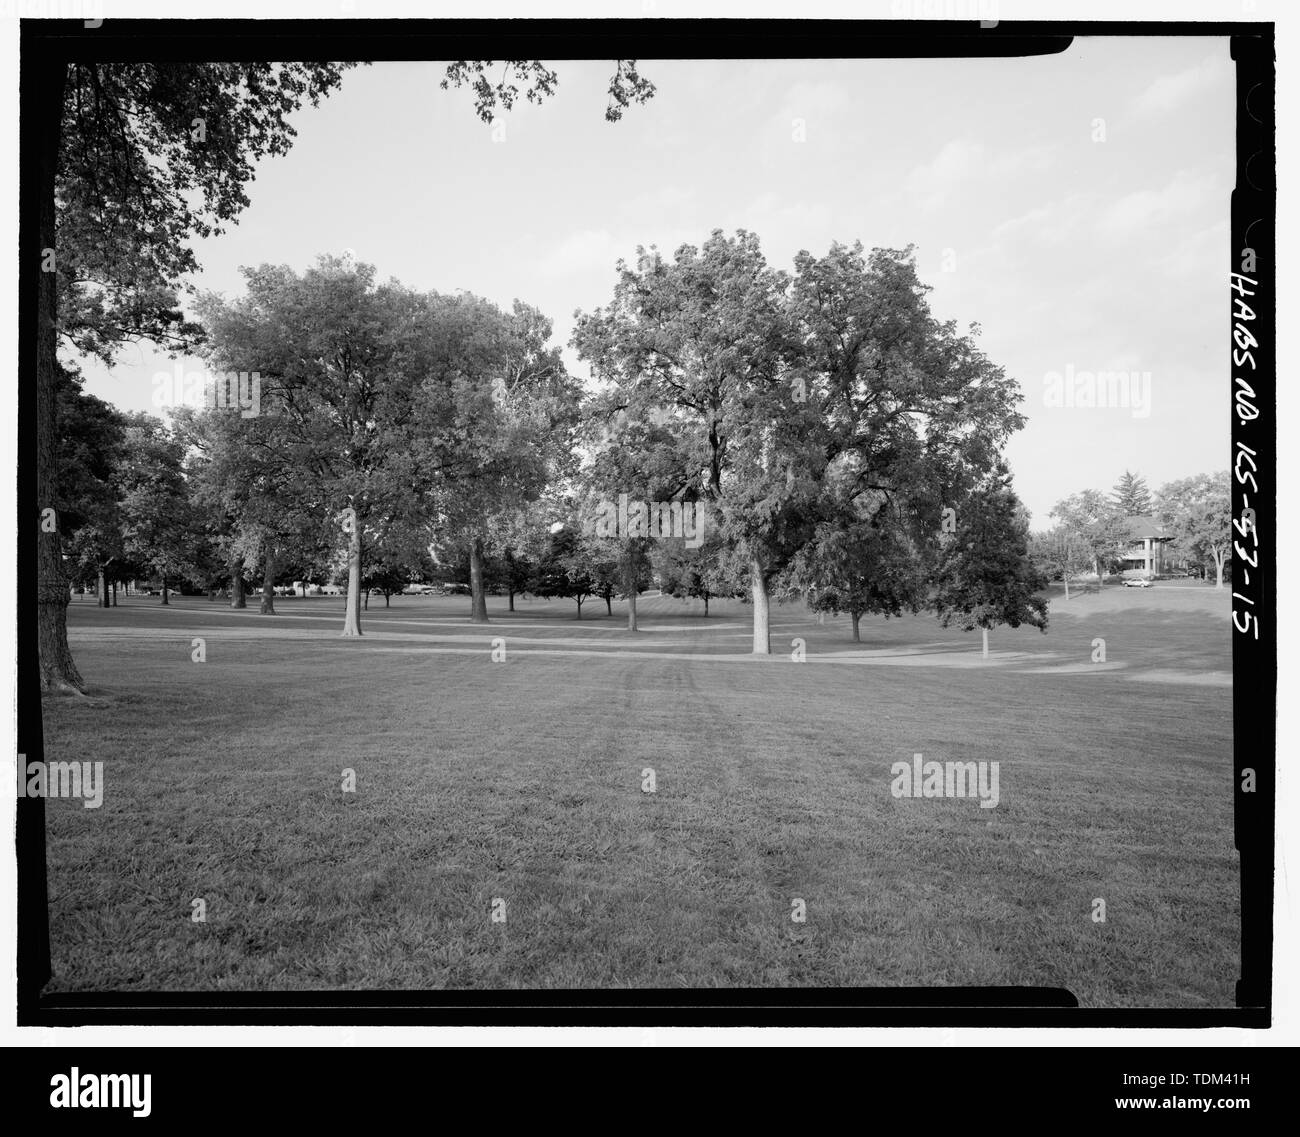 PARADE GROUND, FROM SOUTHWEST CORNER, LOOKING NORTHEAST, BUILDING -330 AT RIGHT - Fort Leavenworth, Metropolitan Avenue and Seventh Street, Leavenworth, Leavenworth County, KS; Newton, Barry, project manager; Glass, James A, project manager; Marko, Eric S, delineator; Zabilka, Eric J, delineator; Broeckelmann, Kurt M, delineator; Rosebrough, Kristin M, delineator; Fernandez, Jose L, delineator; Capstack, Scott E, delineator; Raymond, James A, C, delineator; Schwenk, Sarah, historian; Wolfenbarger, Deon, historian; Whye, Mike, photographer; Cerniglia, Alice, historian; Walton, Wendy, historian; Stock Photo